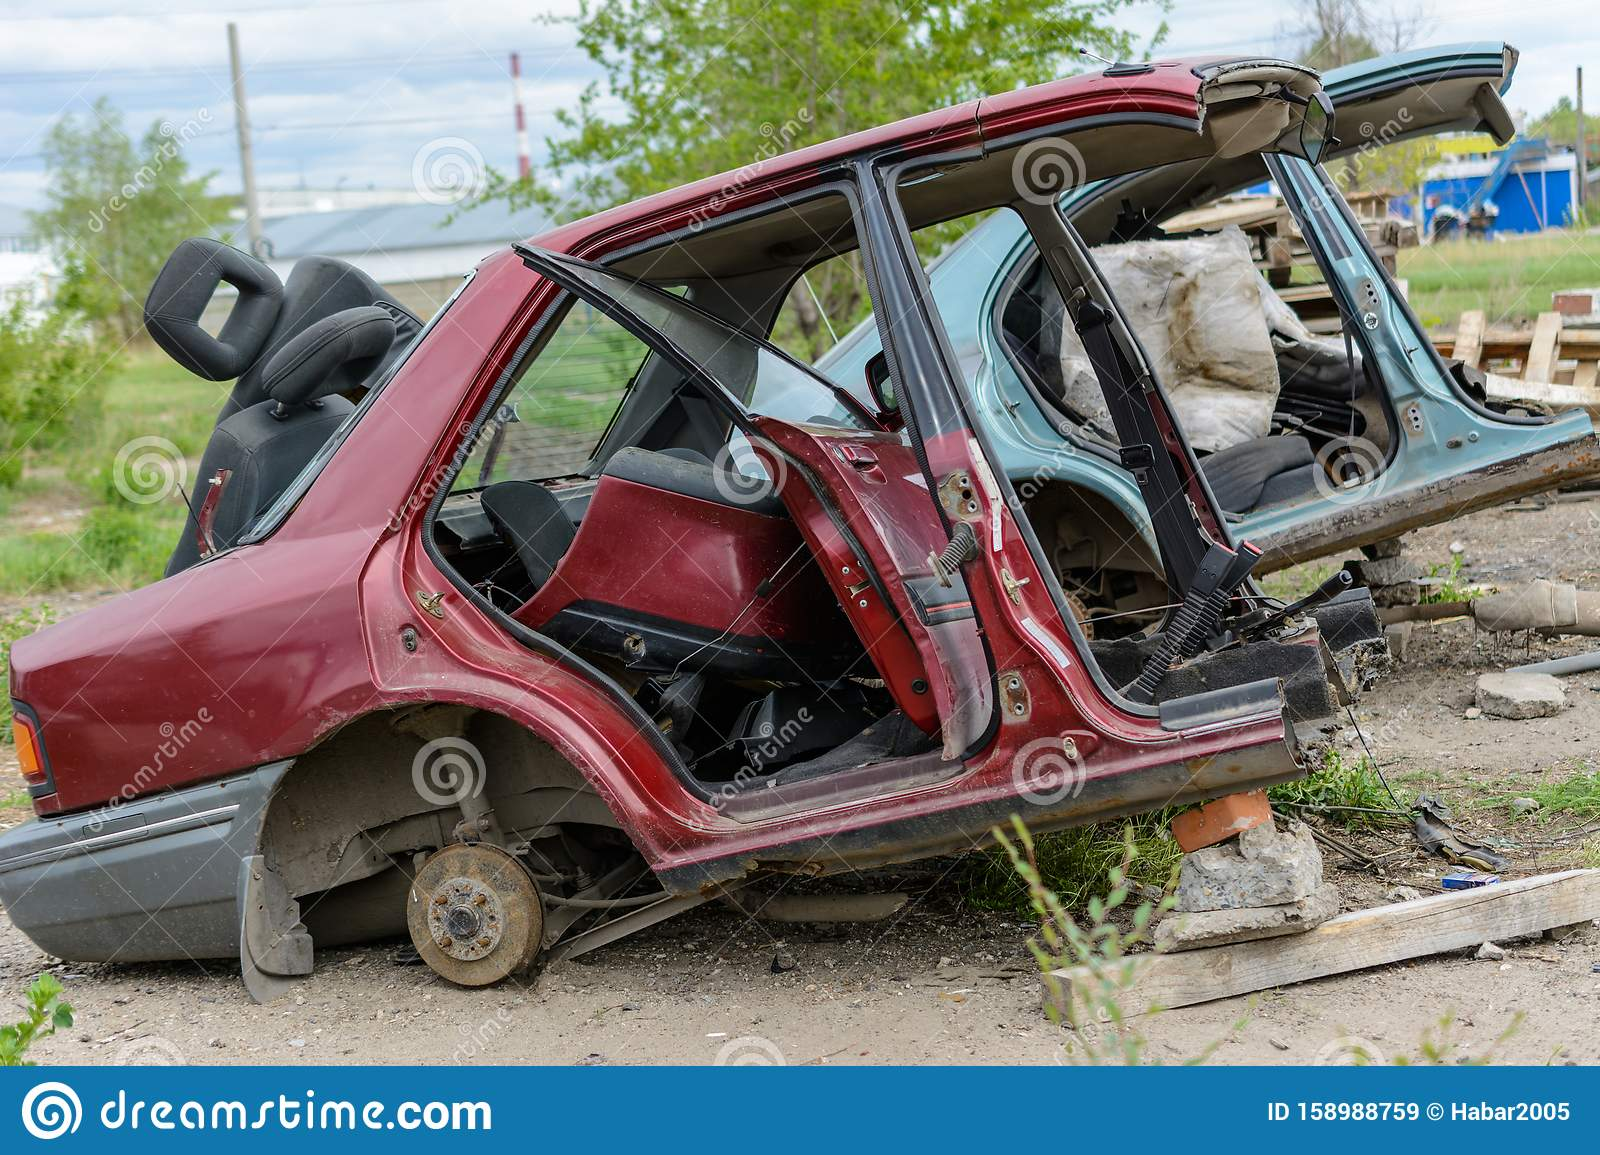 Broken, Crumpled, Dented Car After The Accident. Abandoned Wrecked Cars.  Dump Of Wrecked Cars Stock Image - Image of outdoors, emergency: 158988759